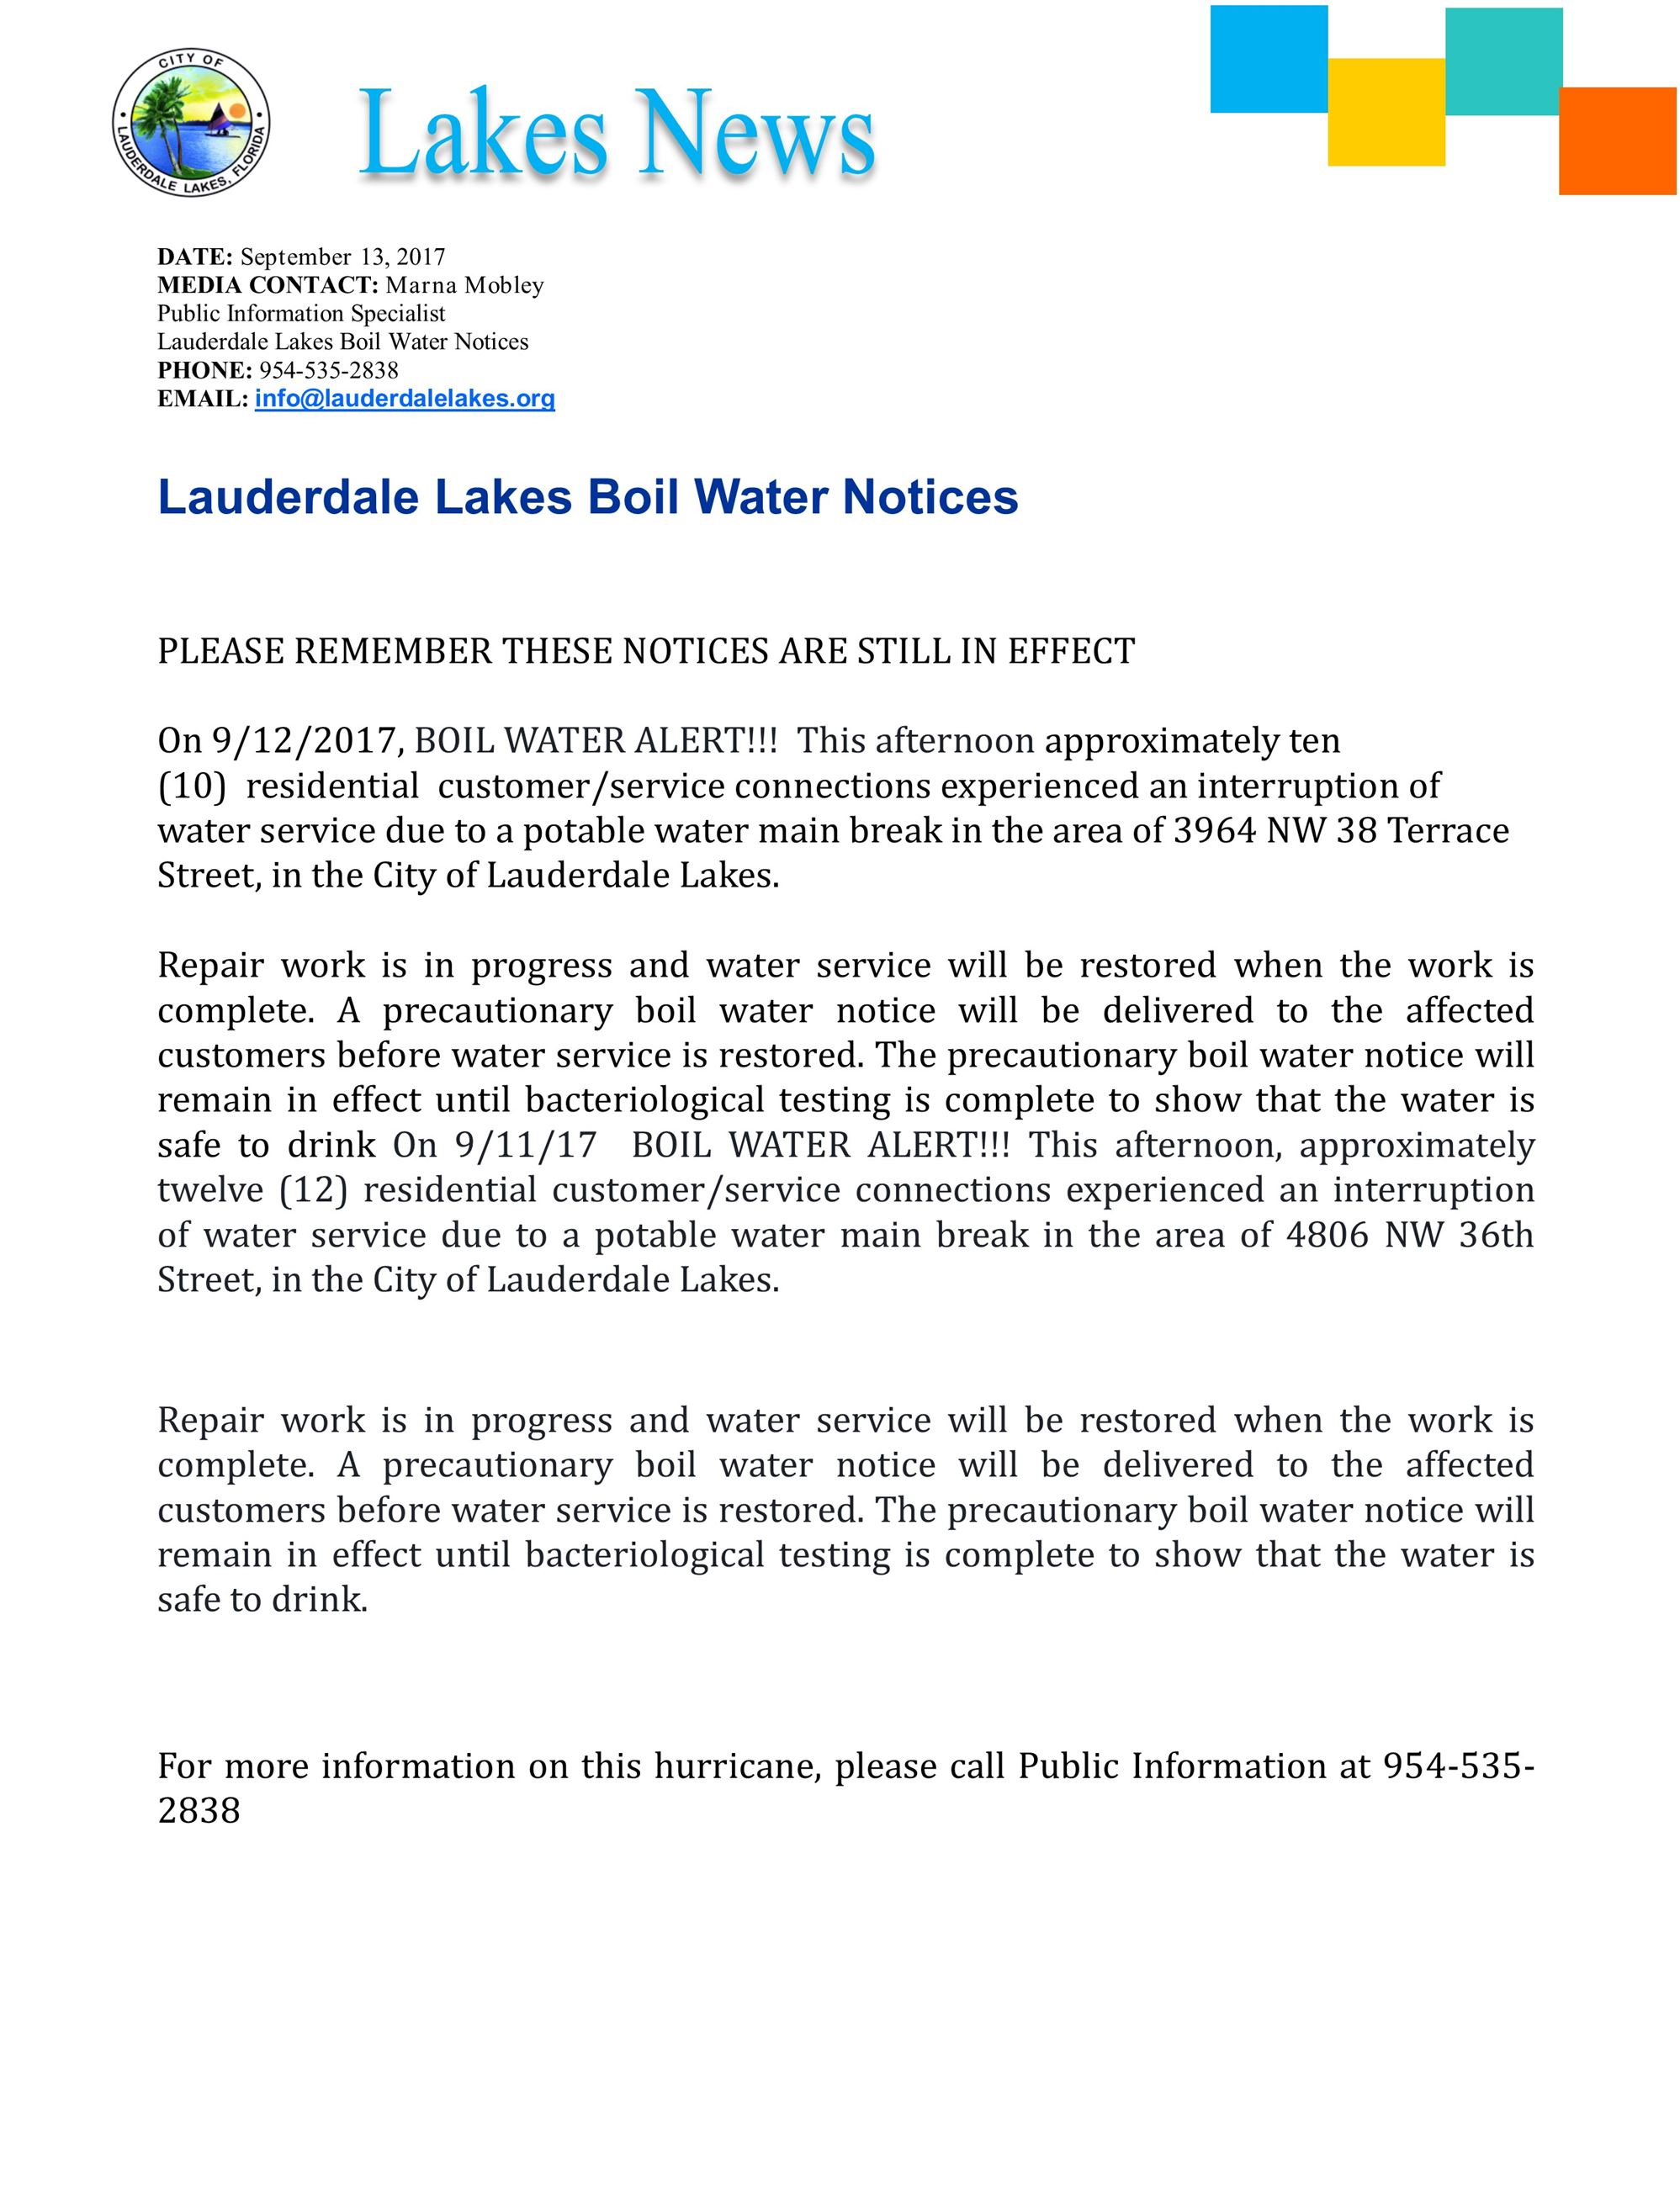 press. boil water notices